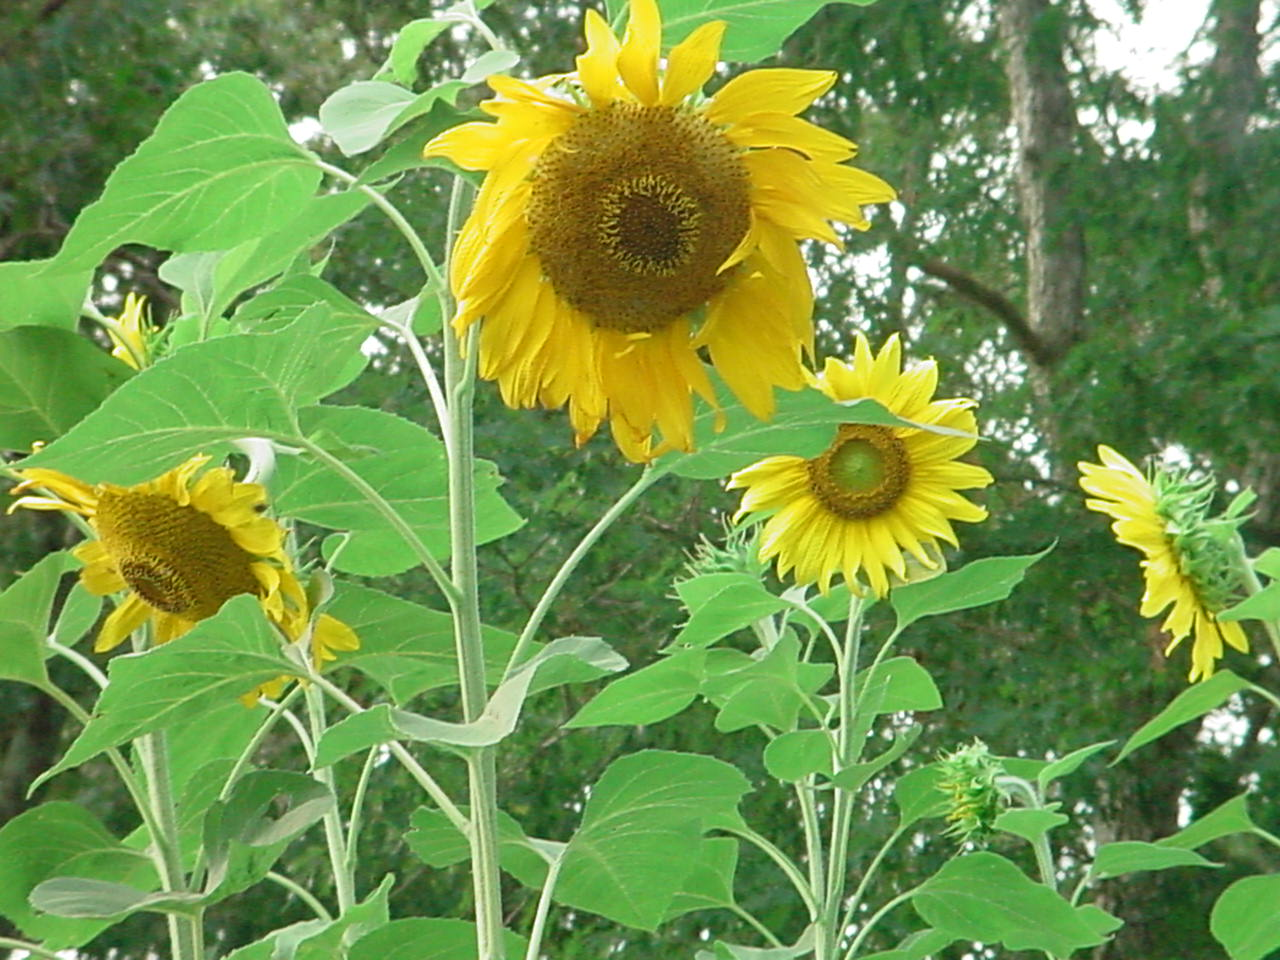 How to Grow Sunflowers in Your Backyard